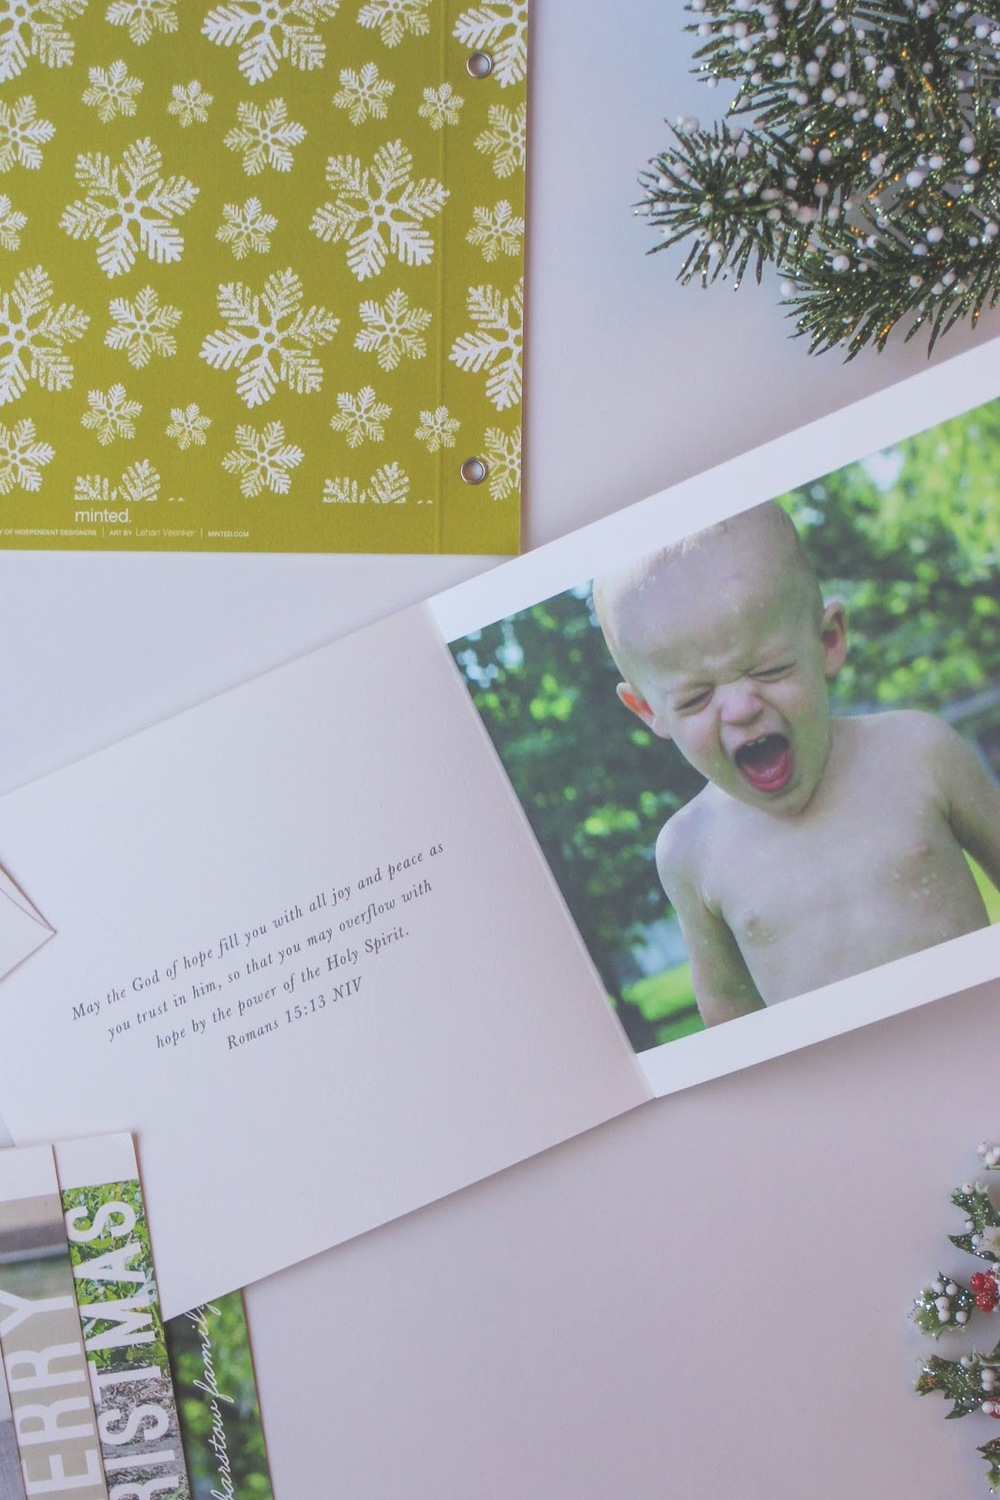 Minted.com has such an amazing selection of Christmas cards and I'm this minibook design! And Little City Adventures is giving away $100 to Minted! Go enter the giveaway now --> http://www.littlecityadventures.com/2015/10/christmas-cards-with-minted-giveaway.html